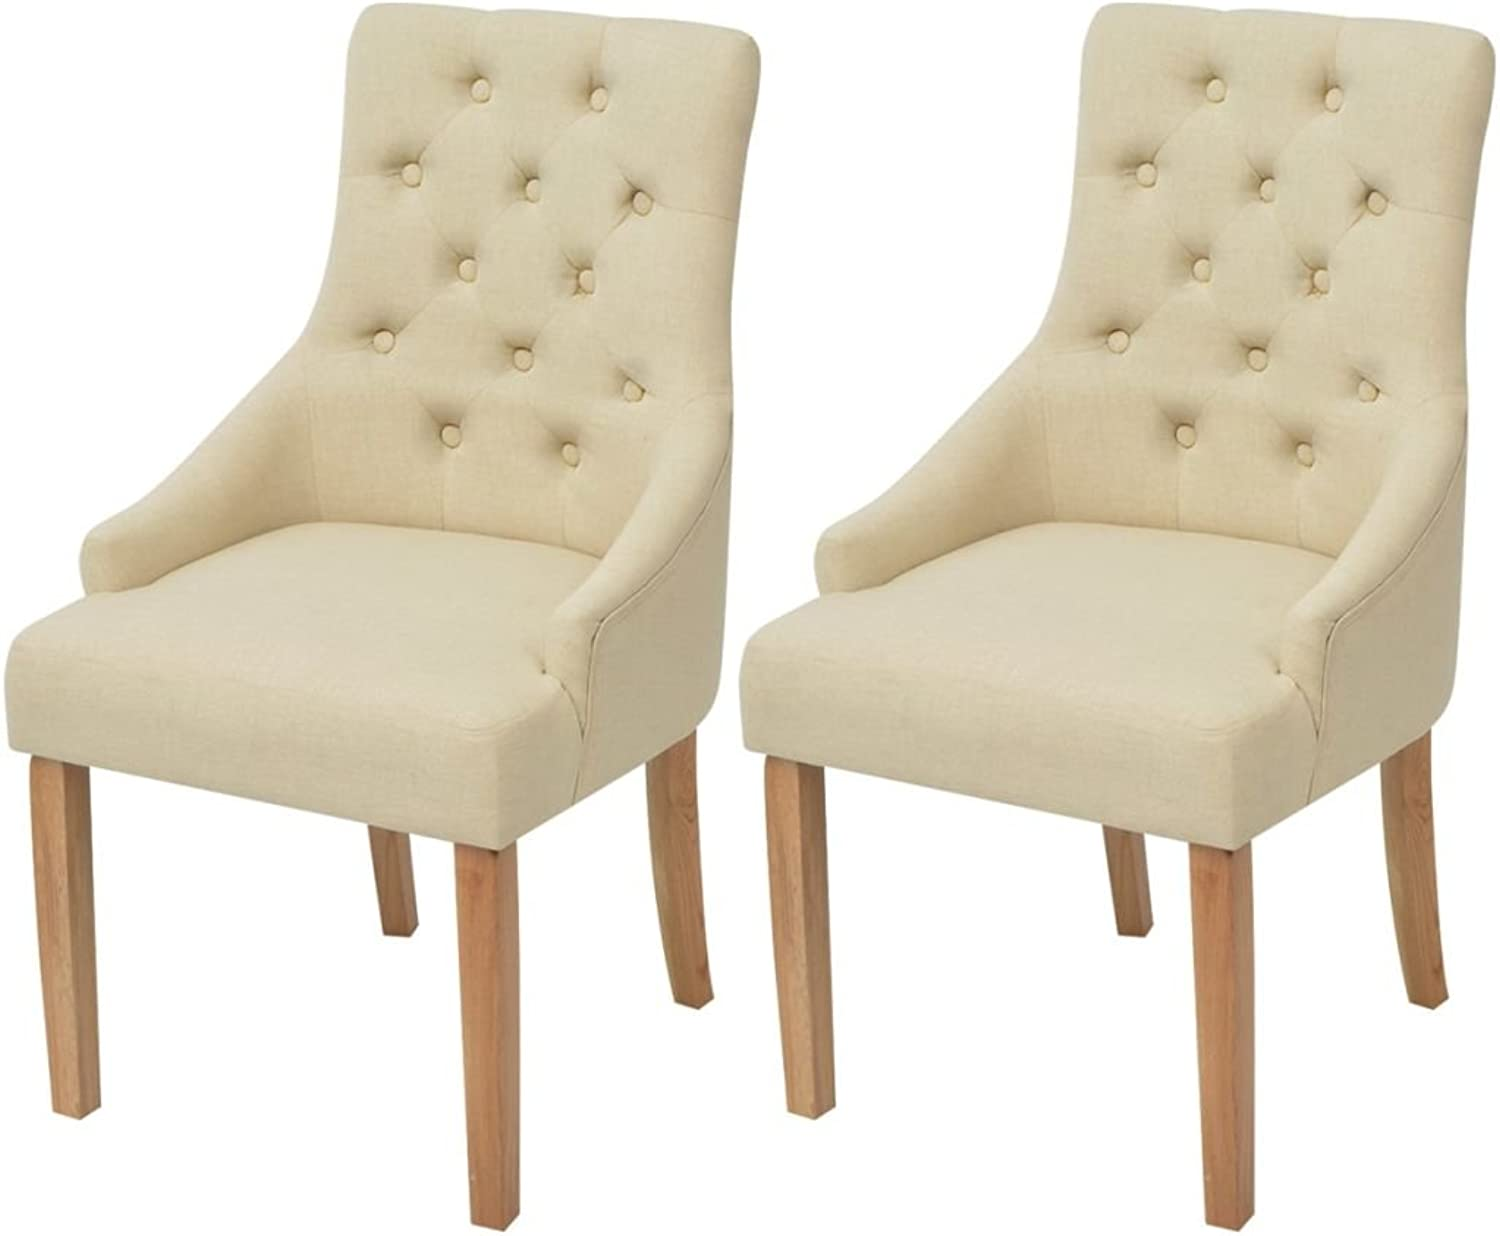 VidaXL 2X Oak Dining Chairs Fabric Cream Kitchen Living Room Furniture Seats